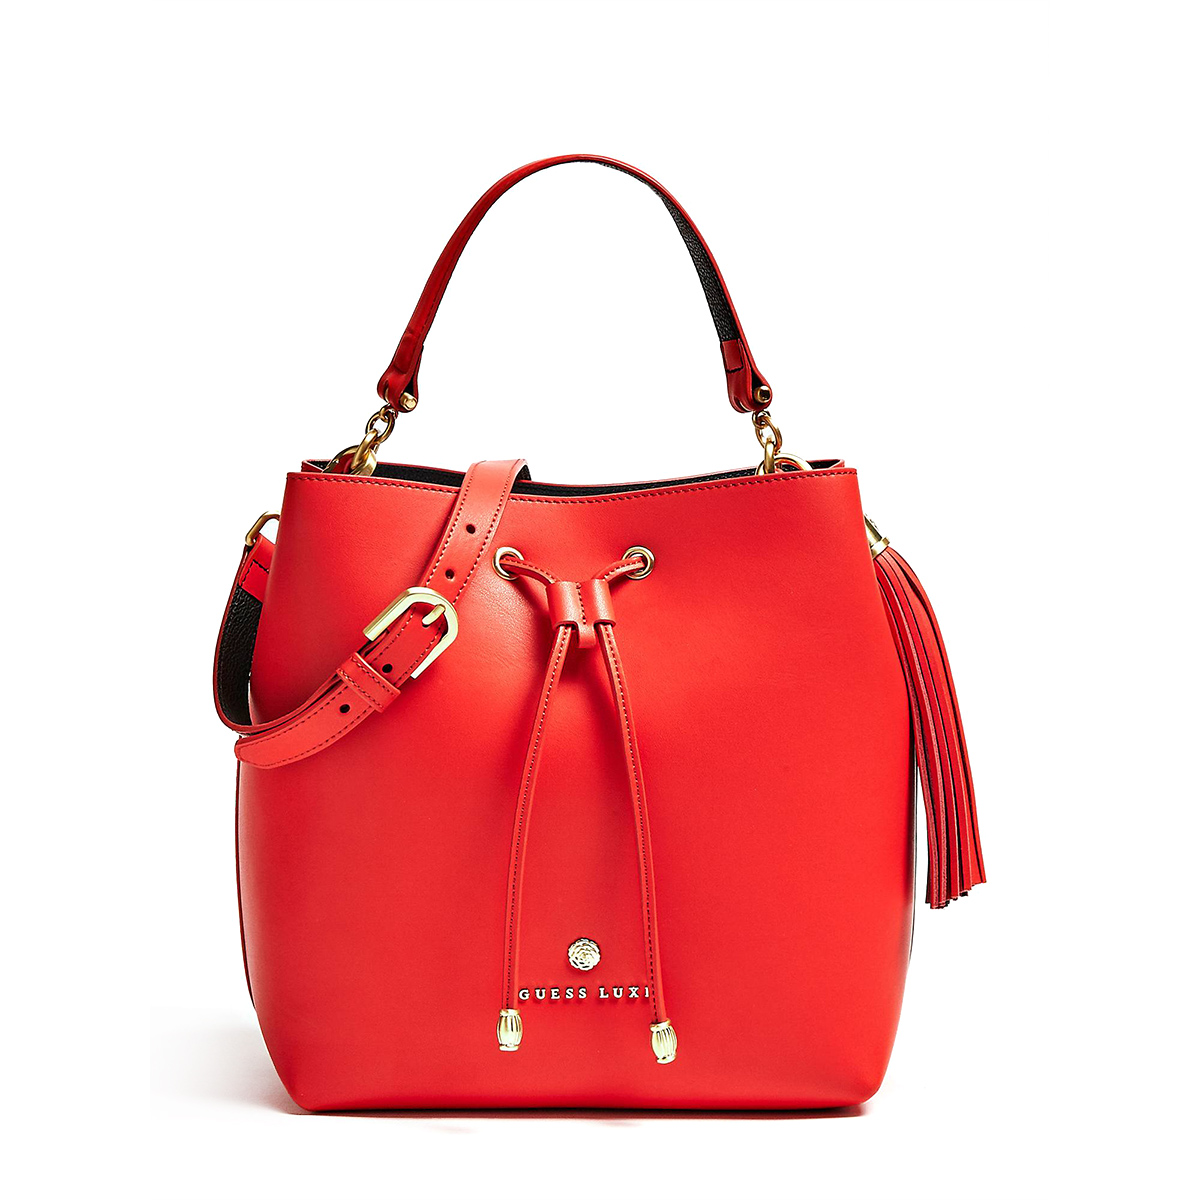 SOPHIE BUCKET BAG LIP